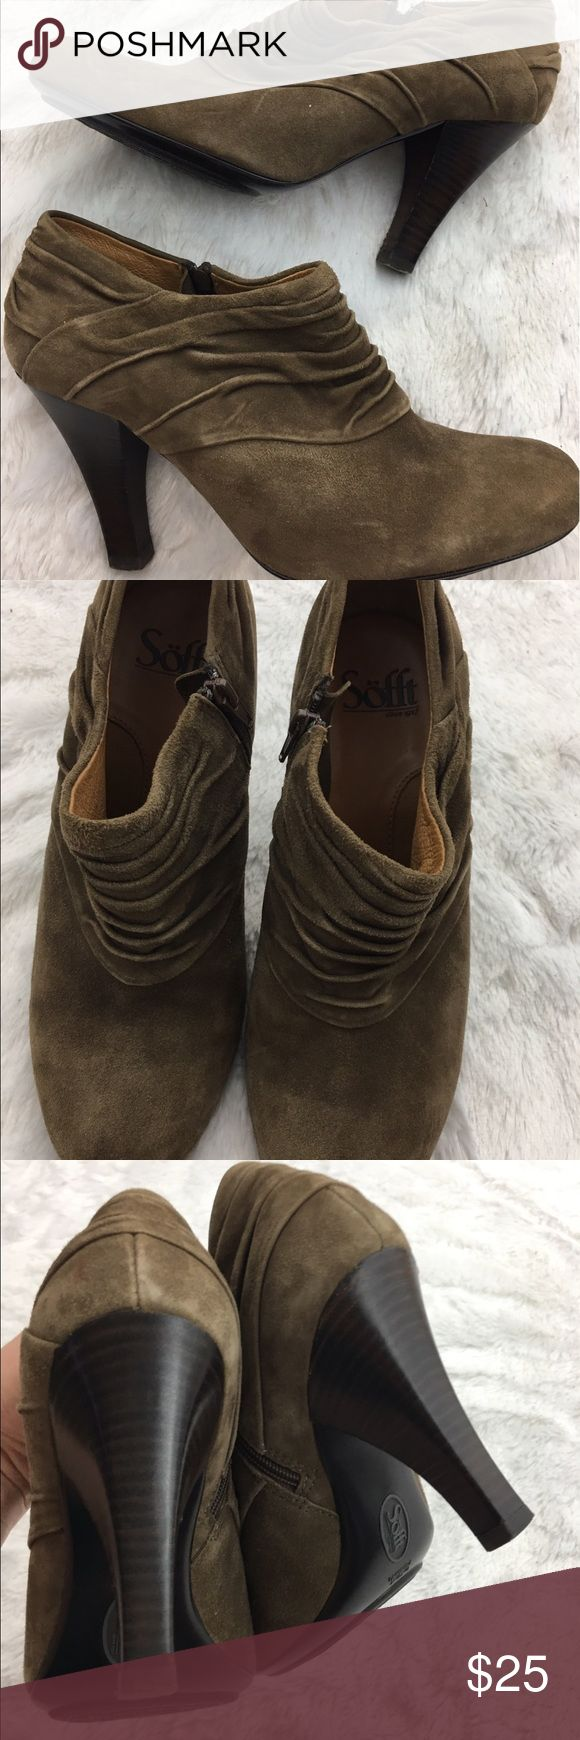 Sofft suede ankle booties Great condition Sofft Shoes